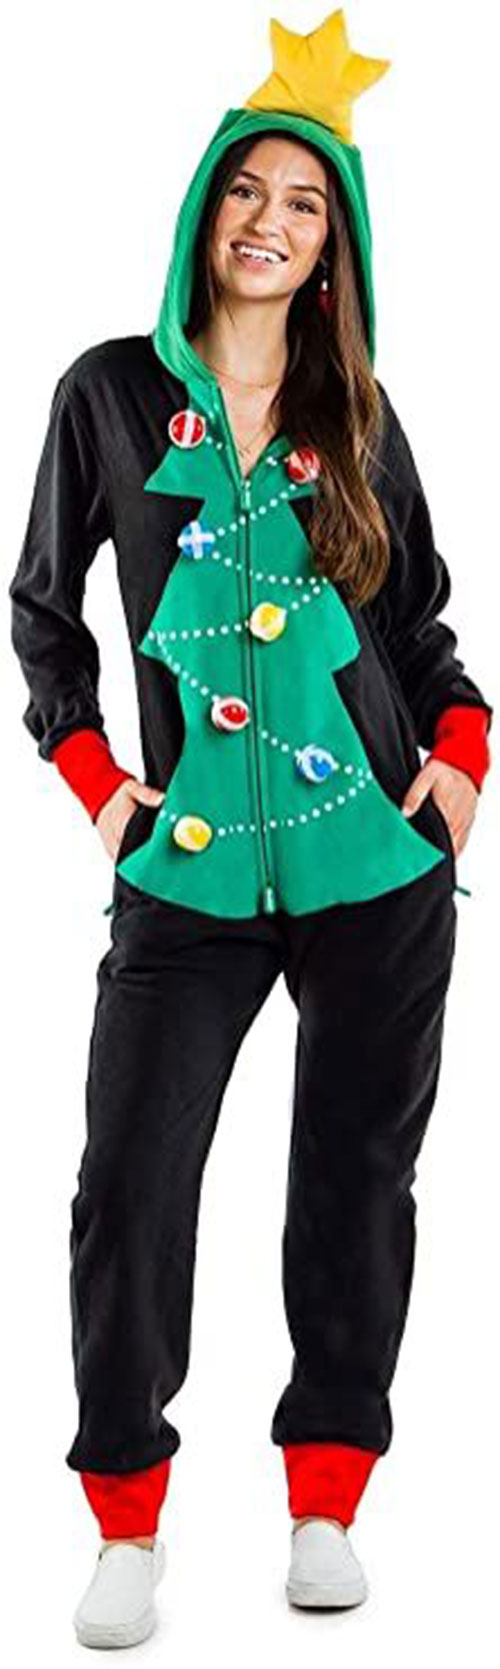 Christmas-Tree-Costumes-Outfits-For-Kids-Adults-2020-8